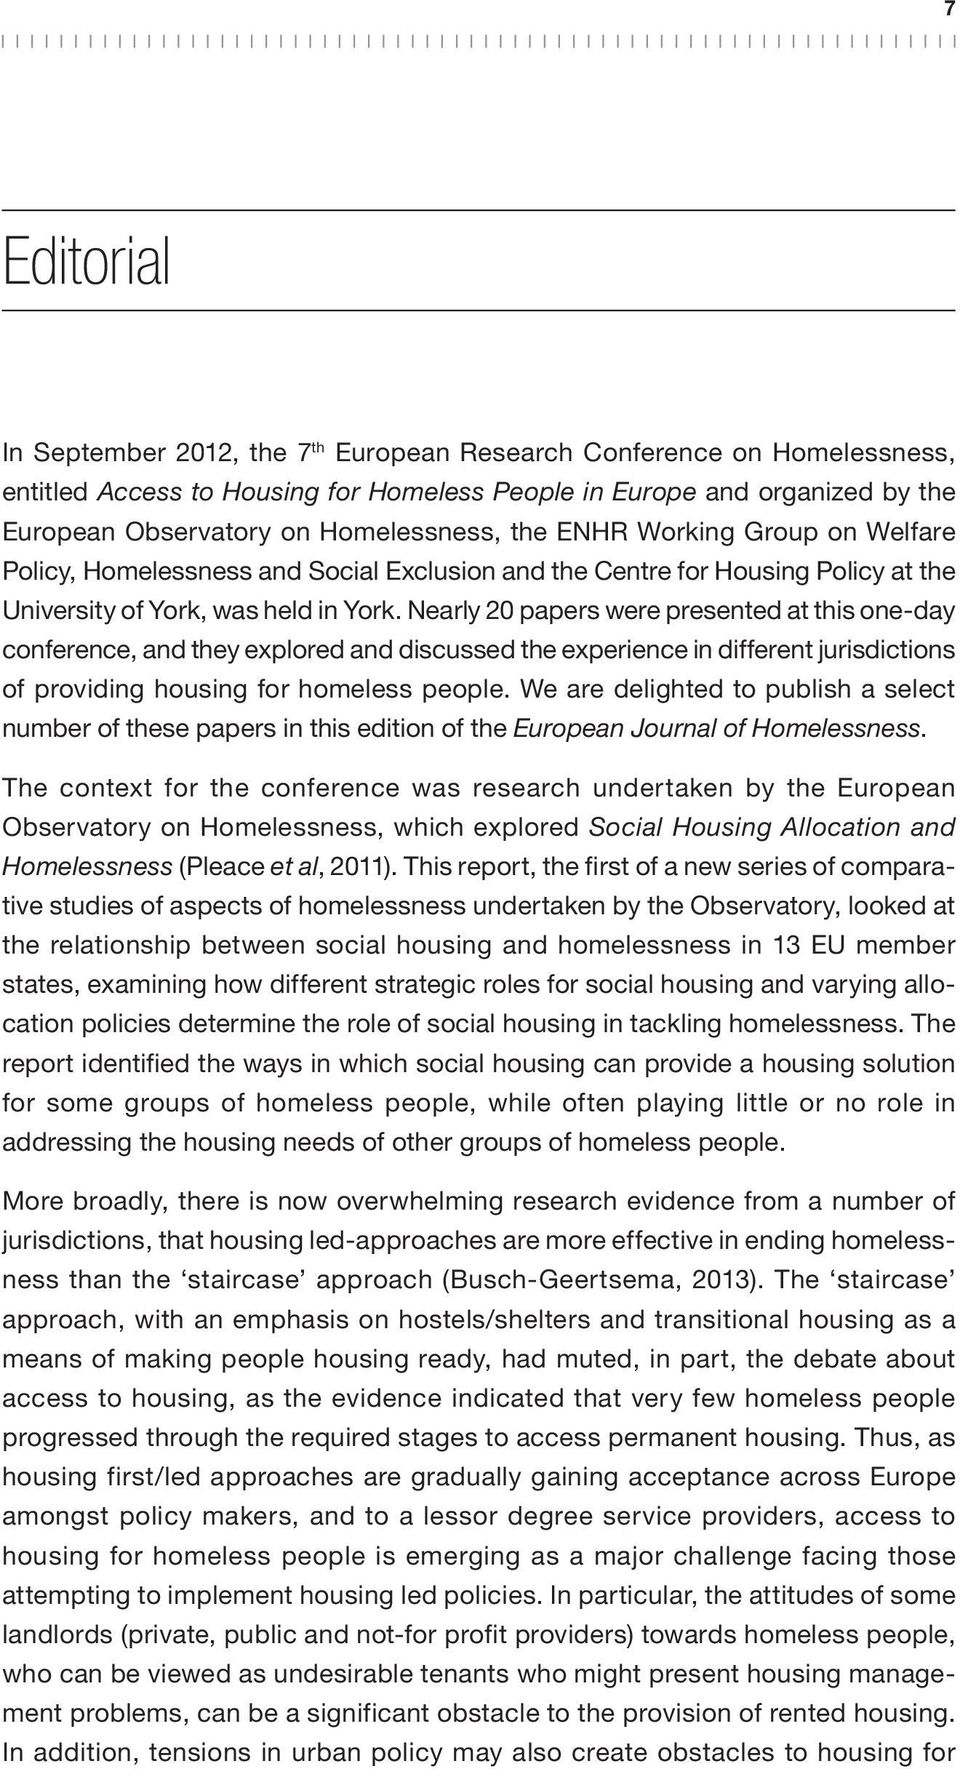 Nearly 20 papers were presented at this one-day conference, and they explored and discussed the experience in different jurisdictions of providing housing for homeless people.